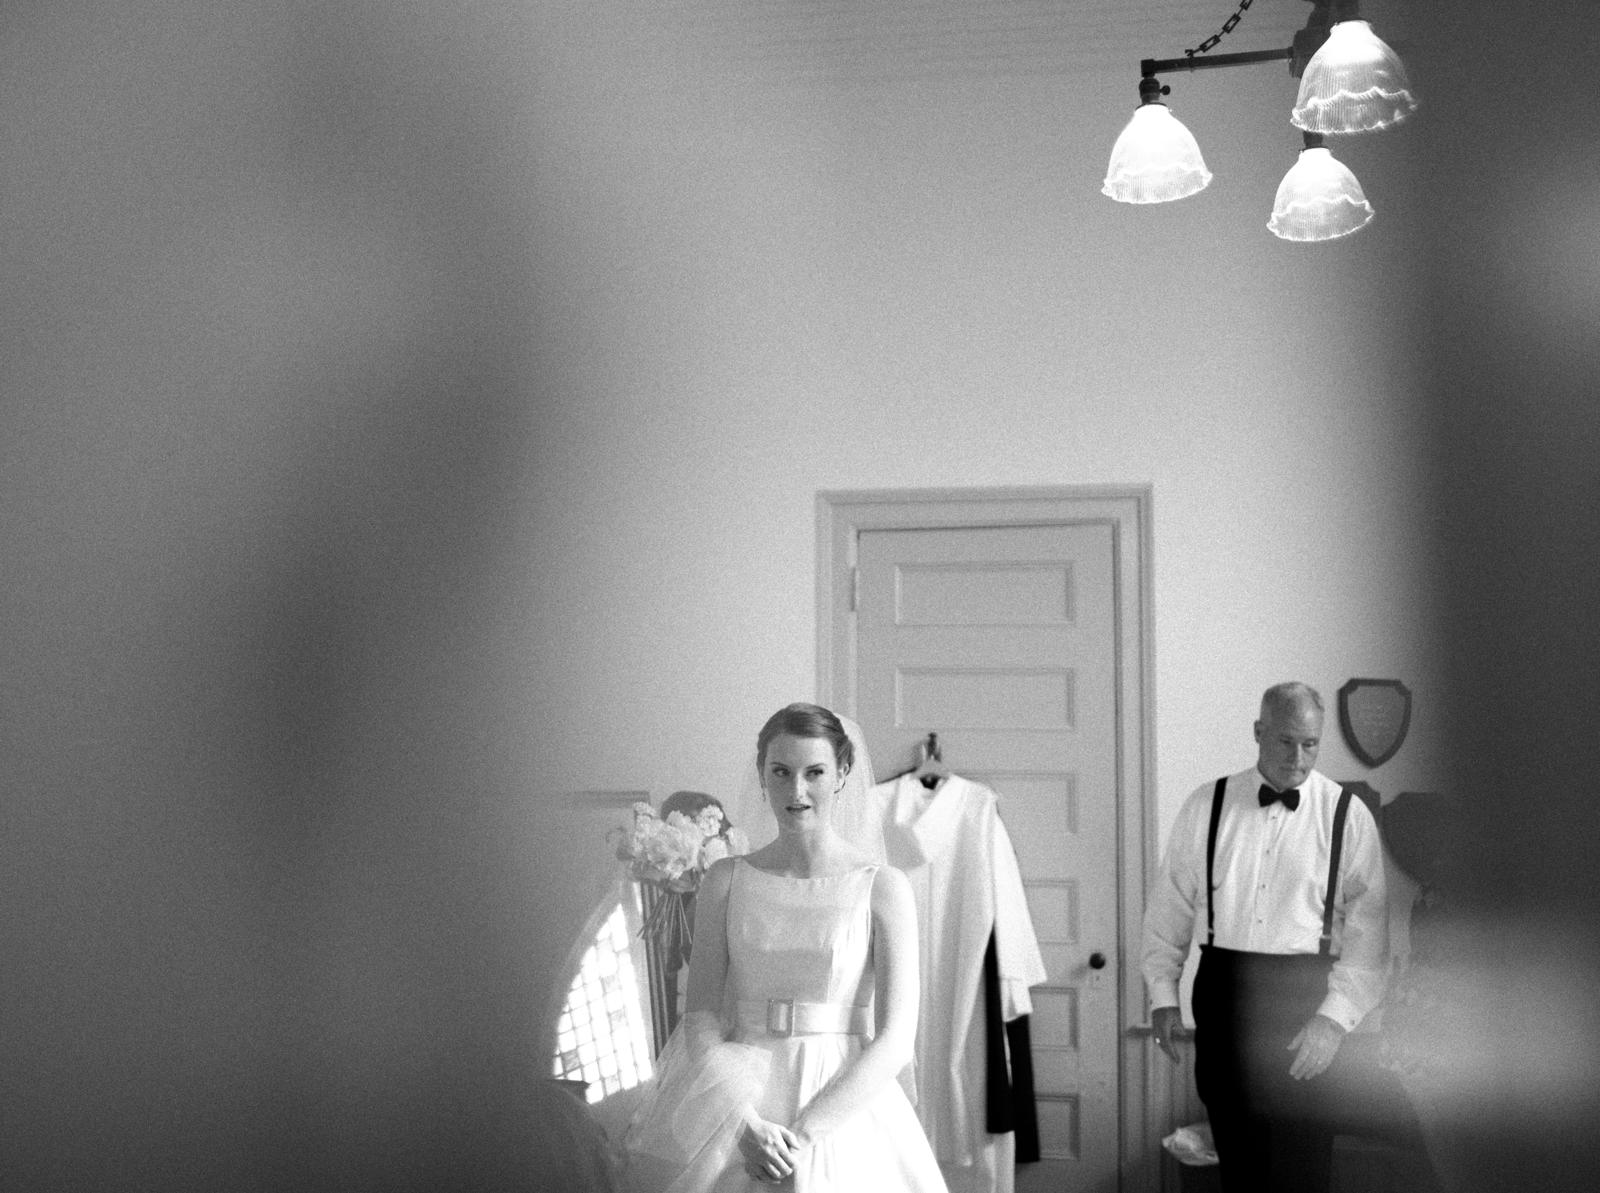 Wedding Photography | A bride prepares for her wedding ceremony.